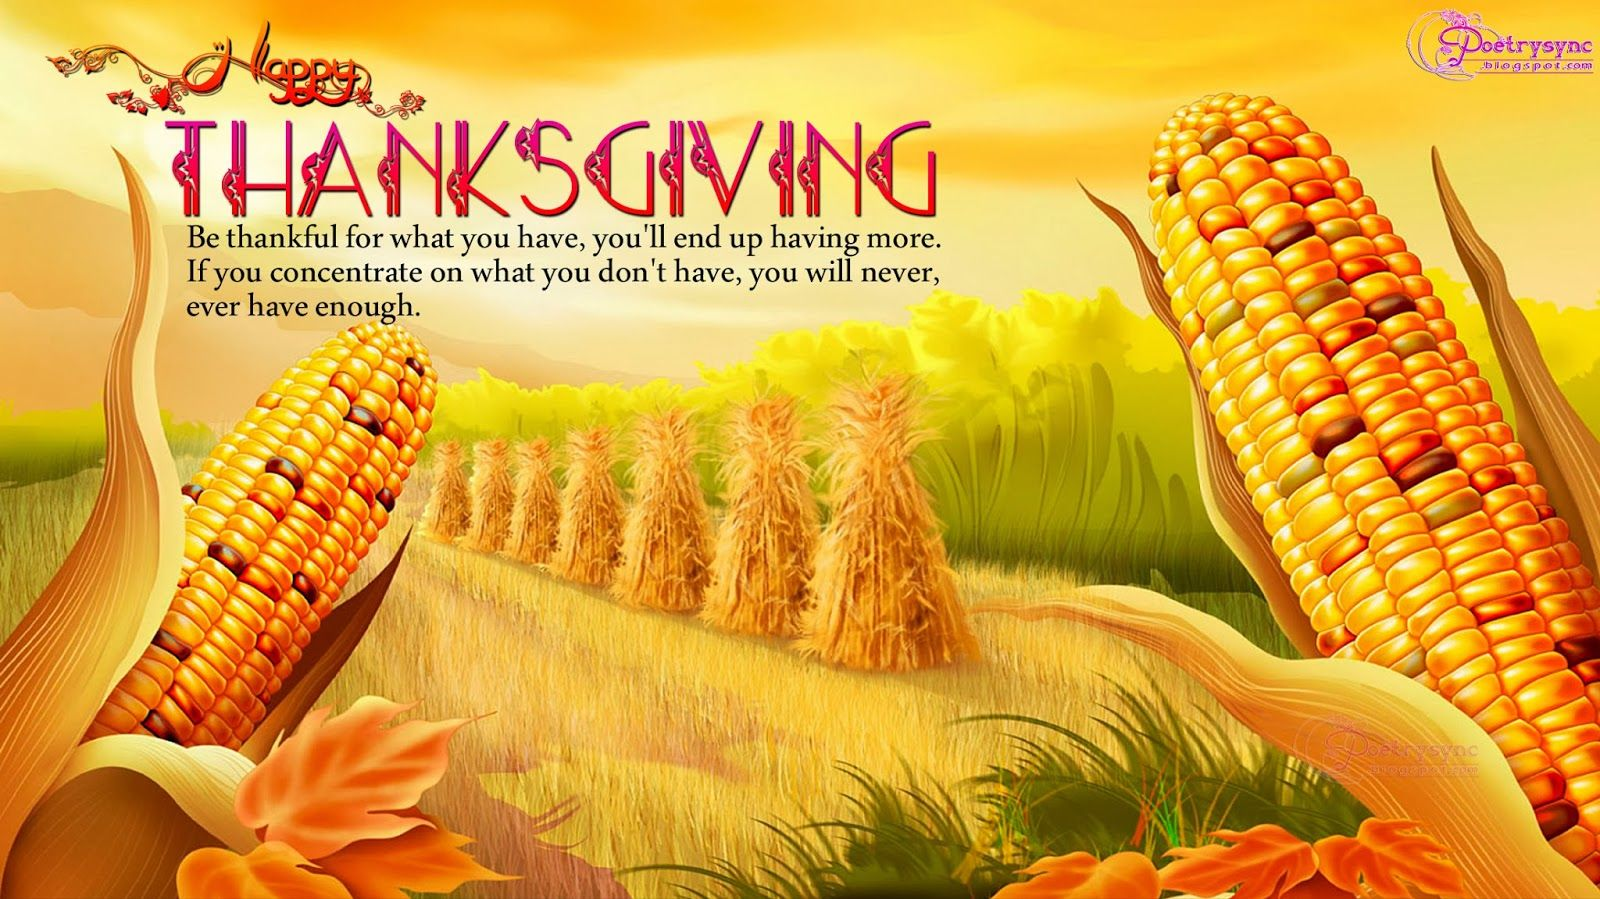 Thanksgiving quotes inspirational yahoo image search results thanksgiving quotes with greeting cards and wallpapers kristyandbryce Gallery